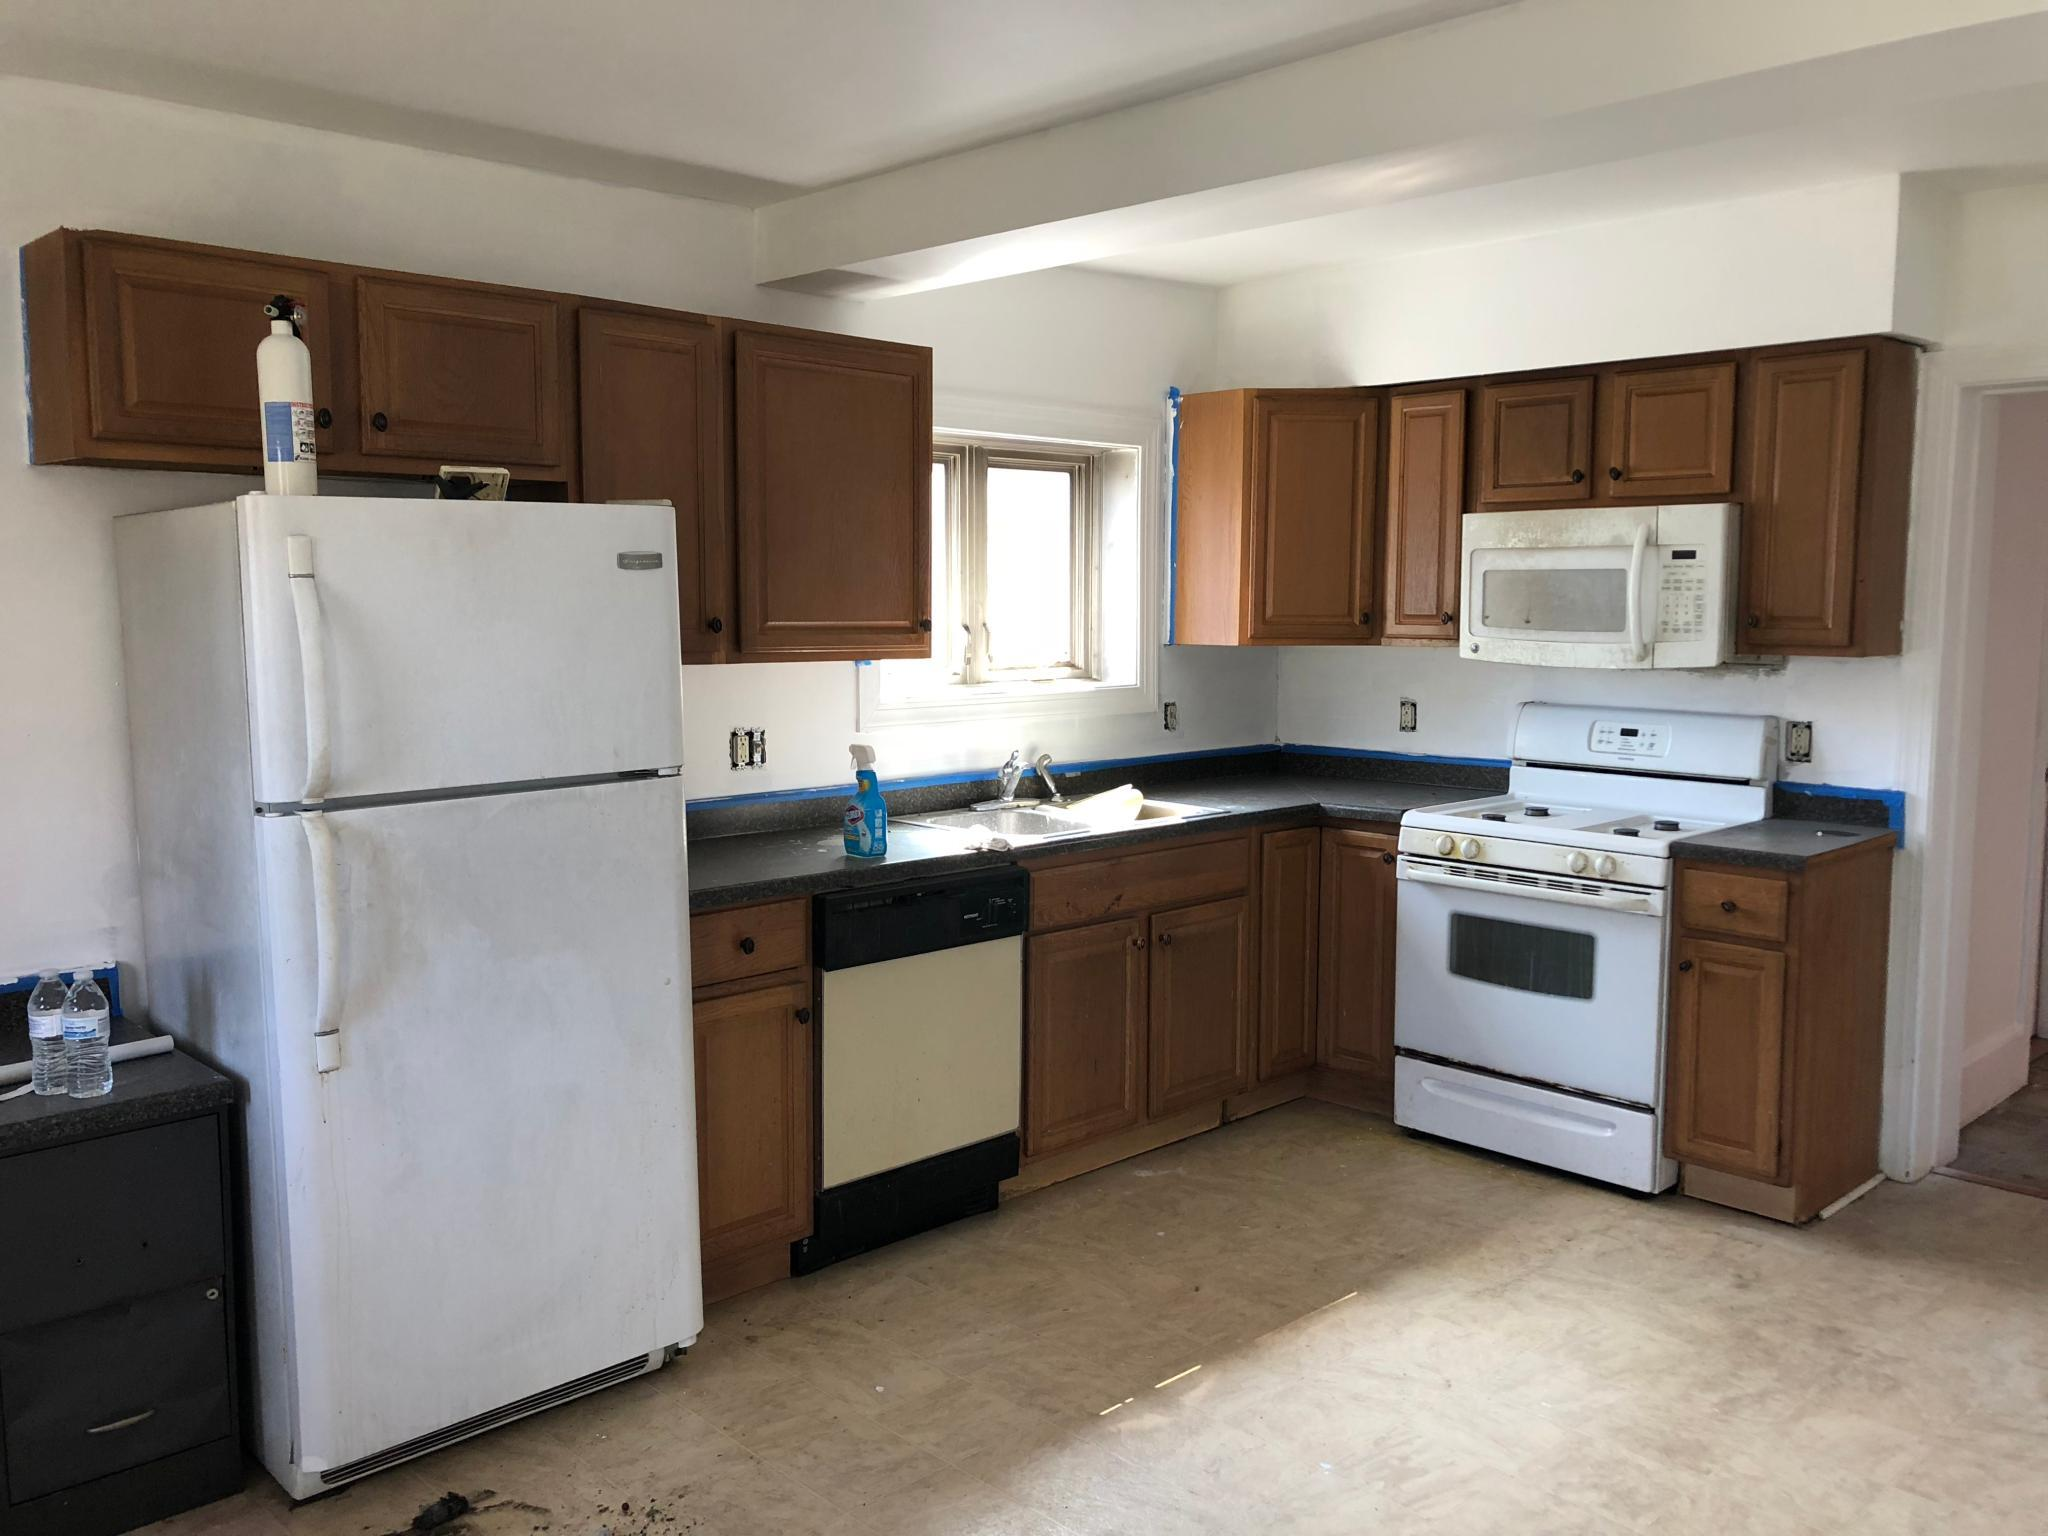 21 N West End Ave #1 For Rent - Lancaster, PA | Trulia Kitchen Cabinets Lancaster Pa on kitchen tables lancaster pa, mom's house lancaster pa, modular homes lancaster pa, cupolas lancaster pa, custom kitchens lancaster pa, pantry lancaster pa, sheds lancaster pa, country furniture lancaster pa, reclaimed wood lancaster pa, amish furniture lancaster pa, interiors furniture lancaster pa, bedroom furniture lancaster pa, windsor chairs lancaster pa, farm tables lancaster pa, barnwood furniture lancaster pa,